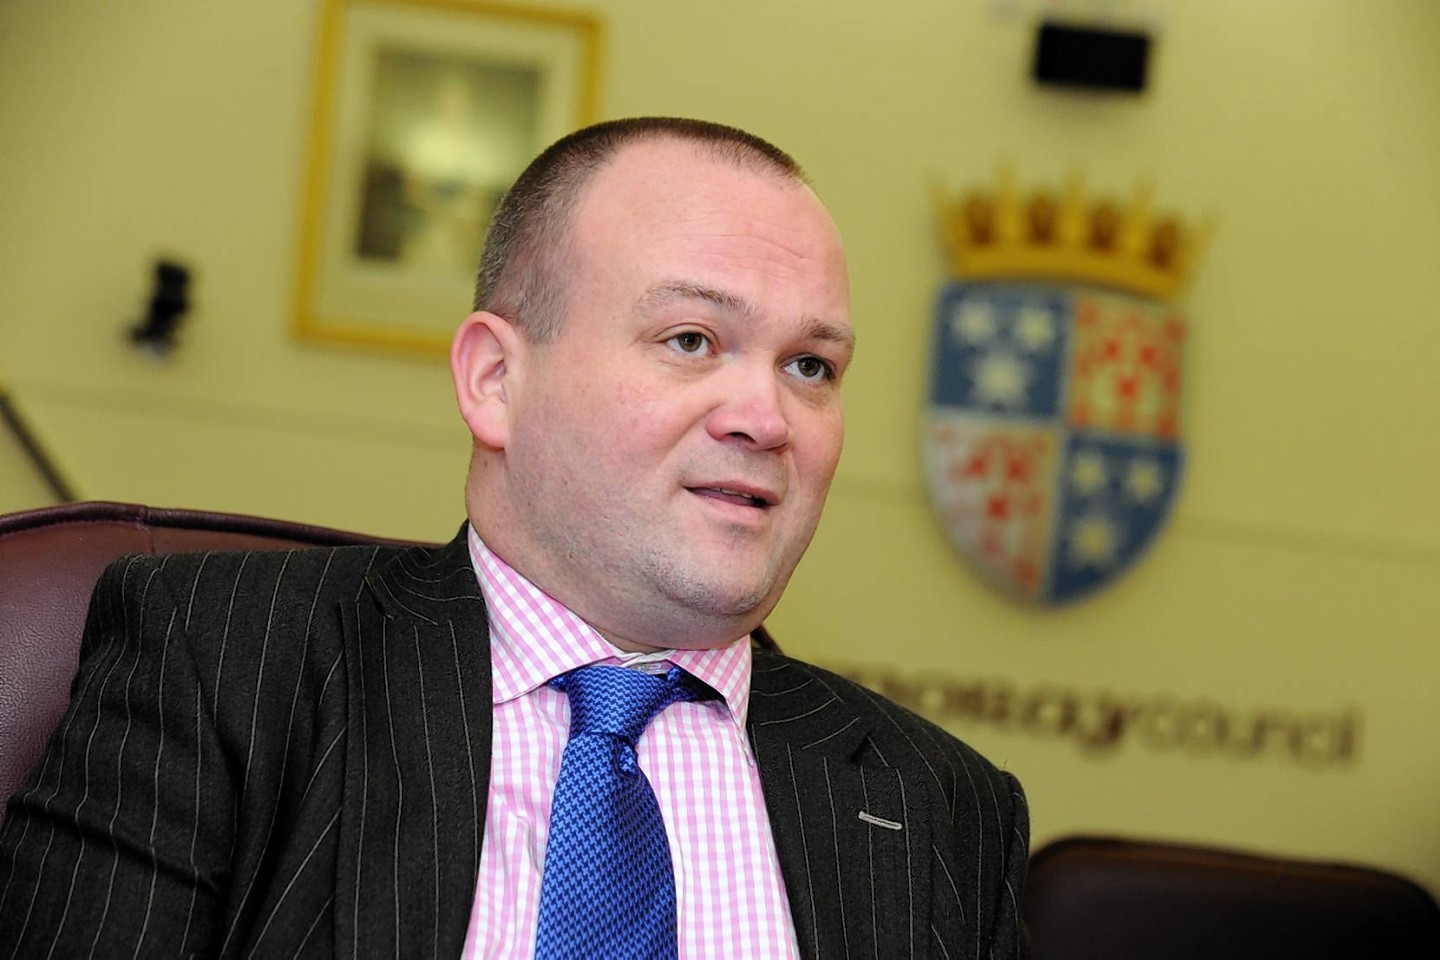 Laurence Findlay believes new ideas are needed to fill teaching vacancies.